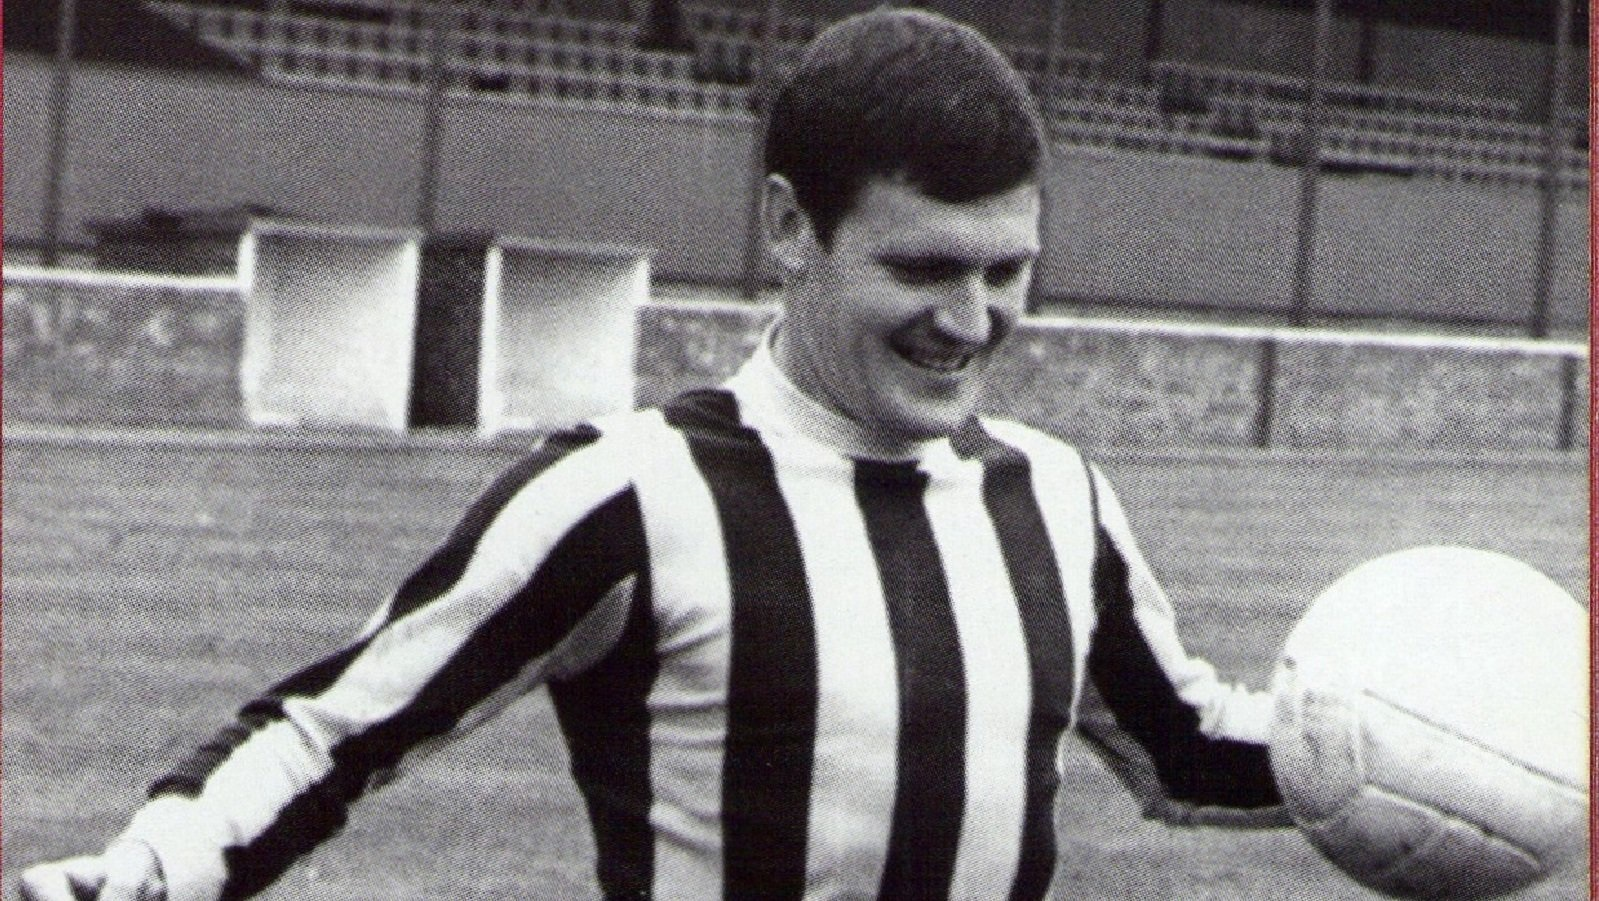 PASSED AWAY: Denis Atkins played right back for both City and Huddersfield